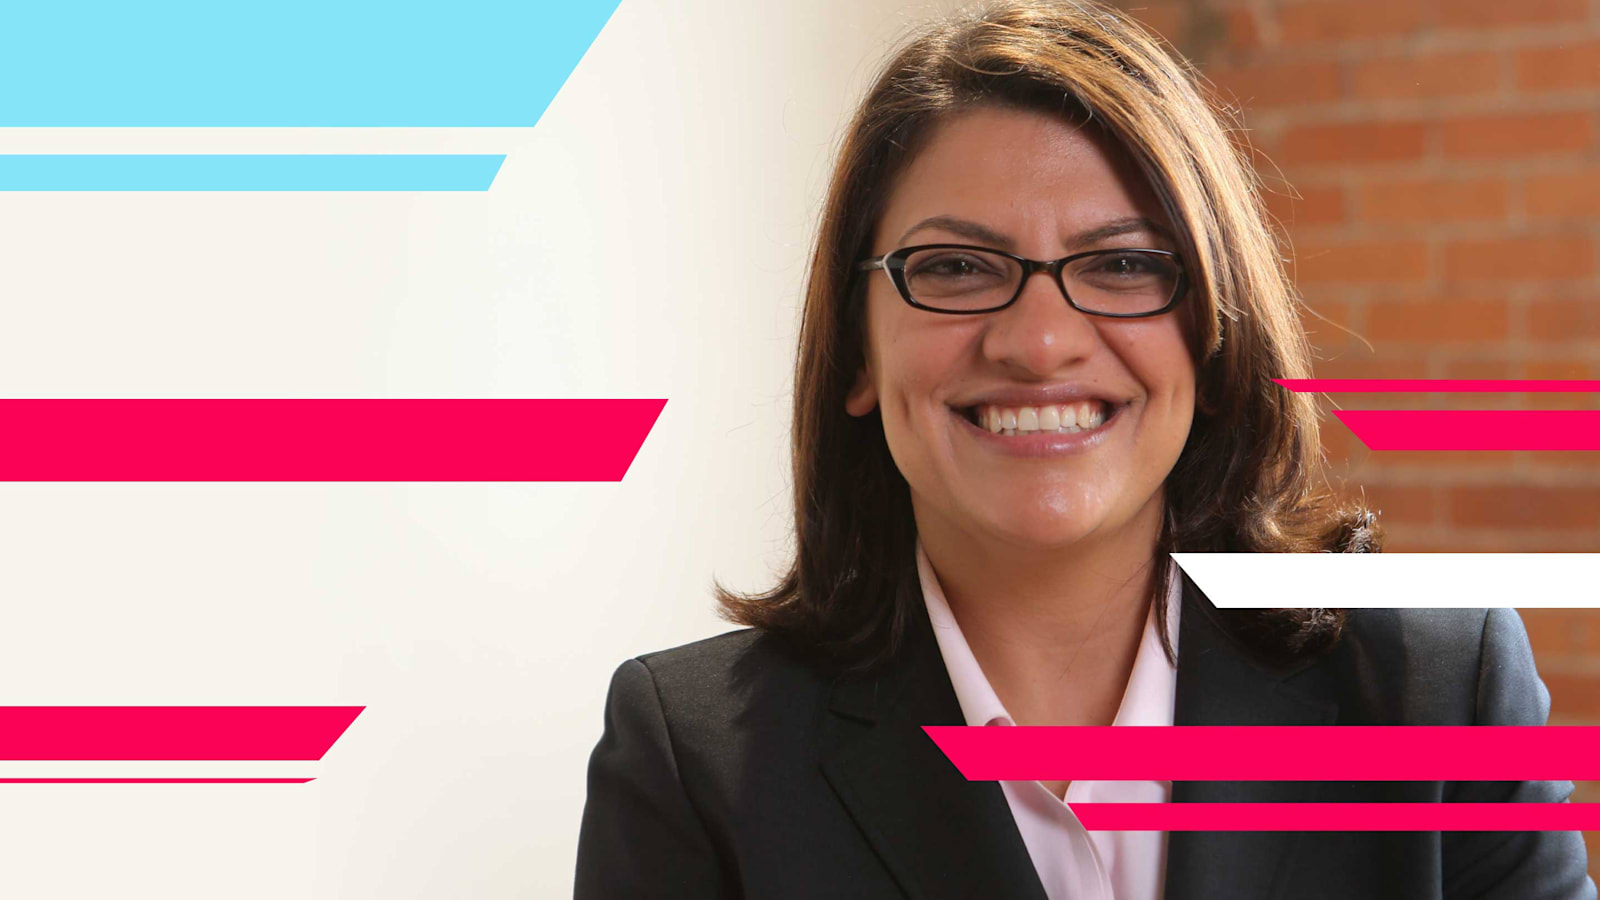 Rashida Tlaib was asked to prove she's a U.S. citizen — now she's one of the first Muslim women in Congress